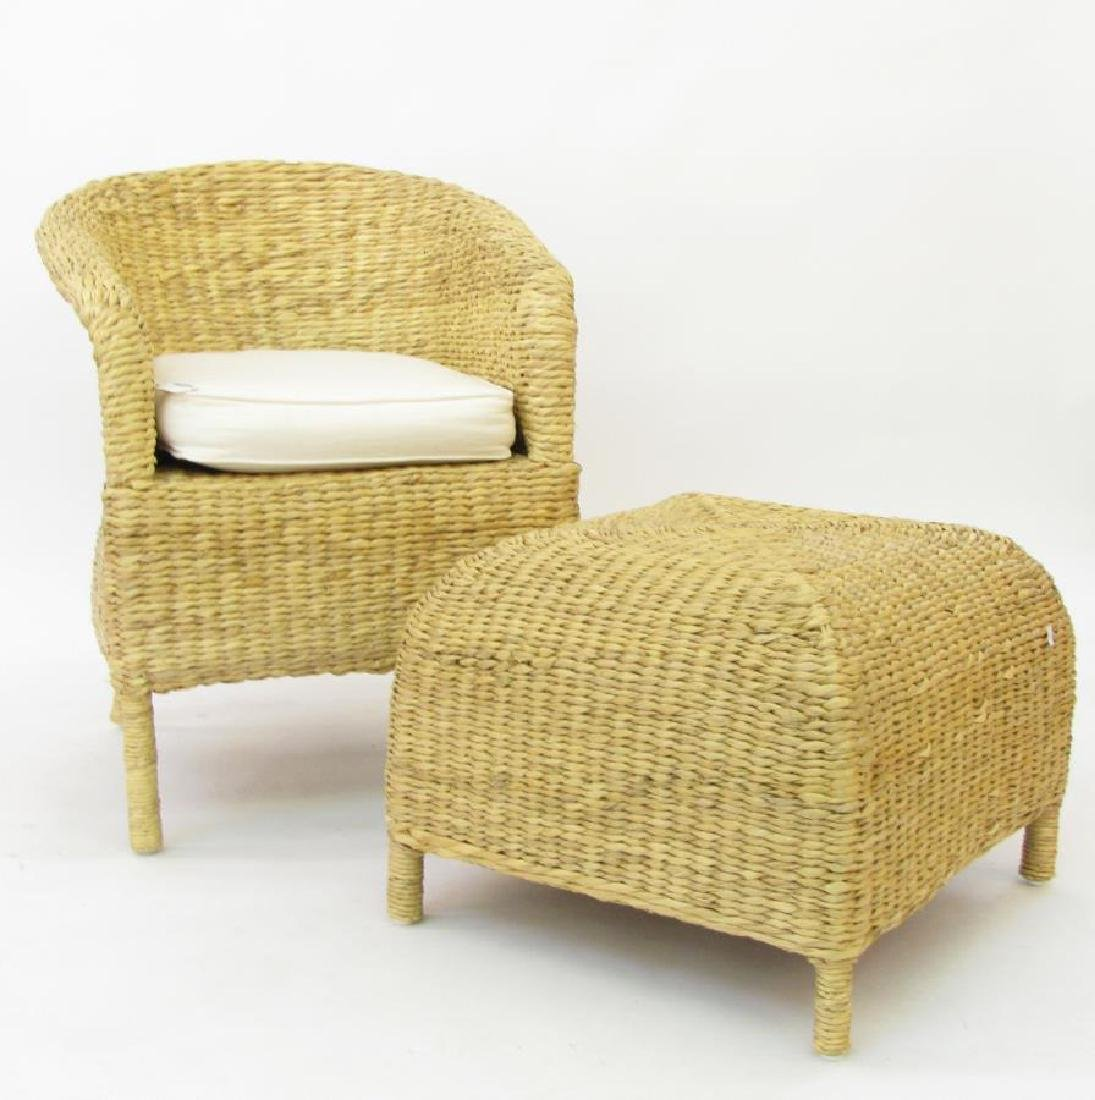 Pottery Barn Rush Weave Chair and Hassock - 2